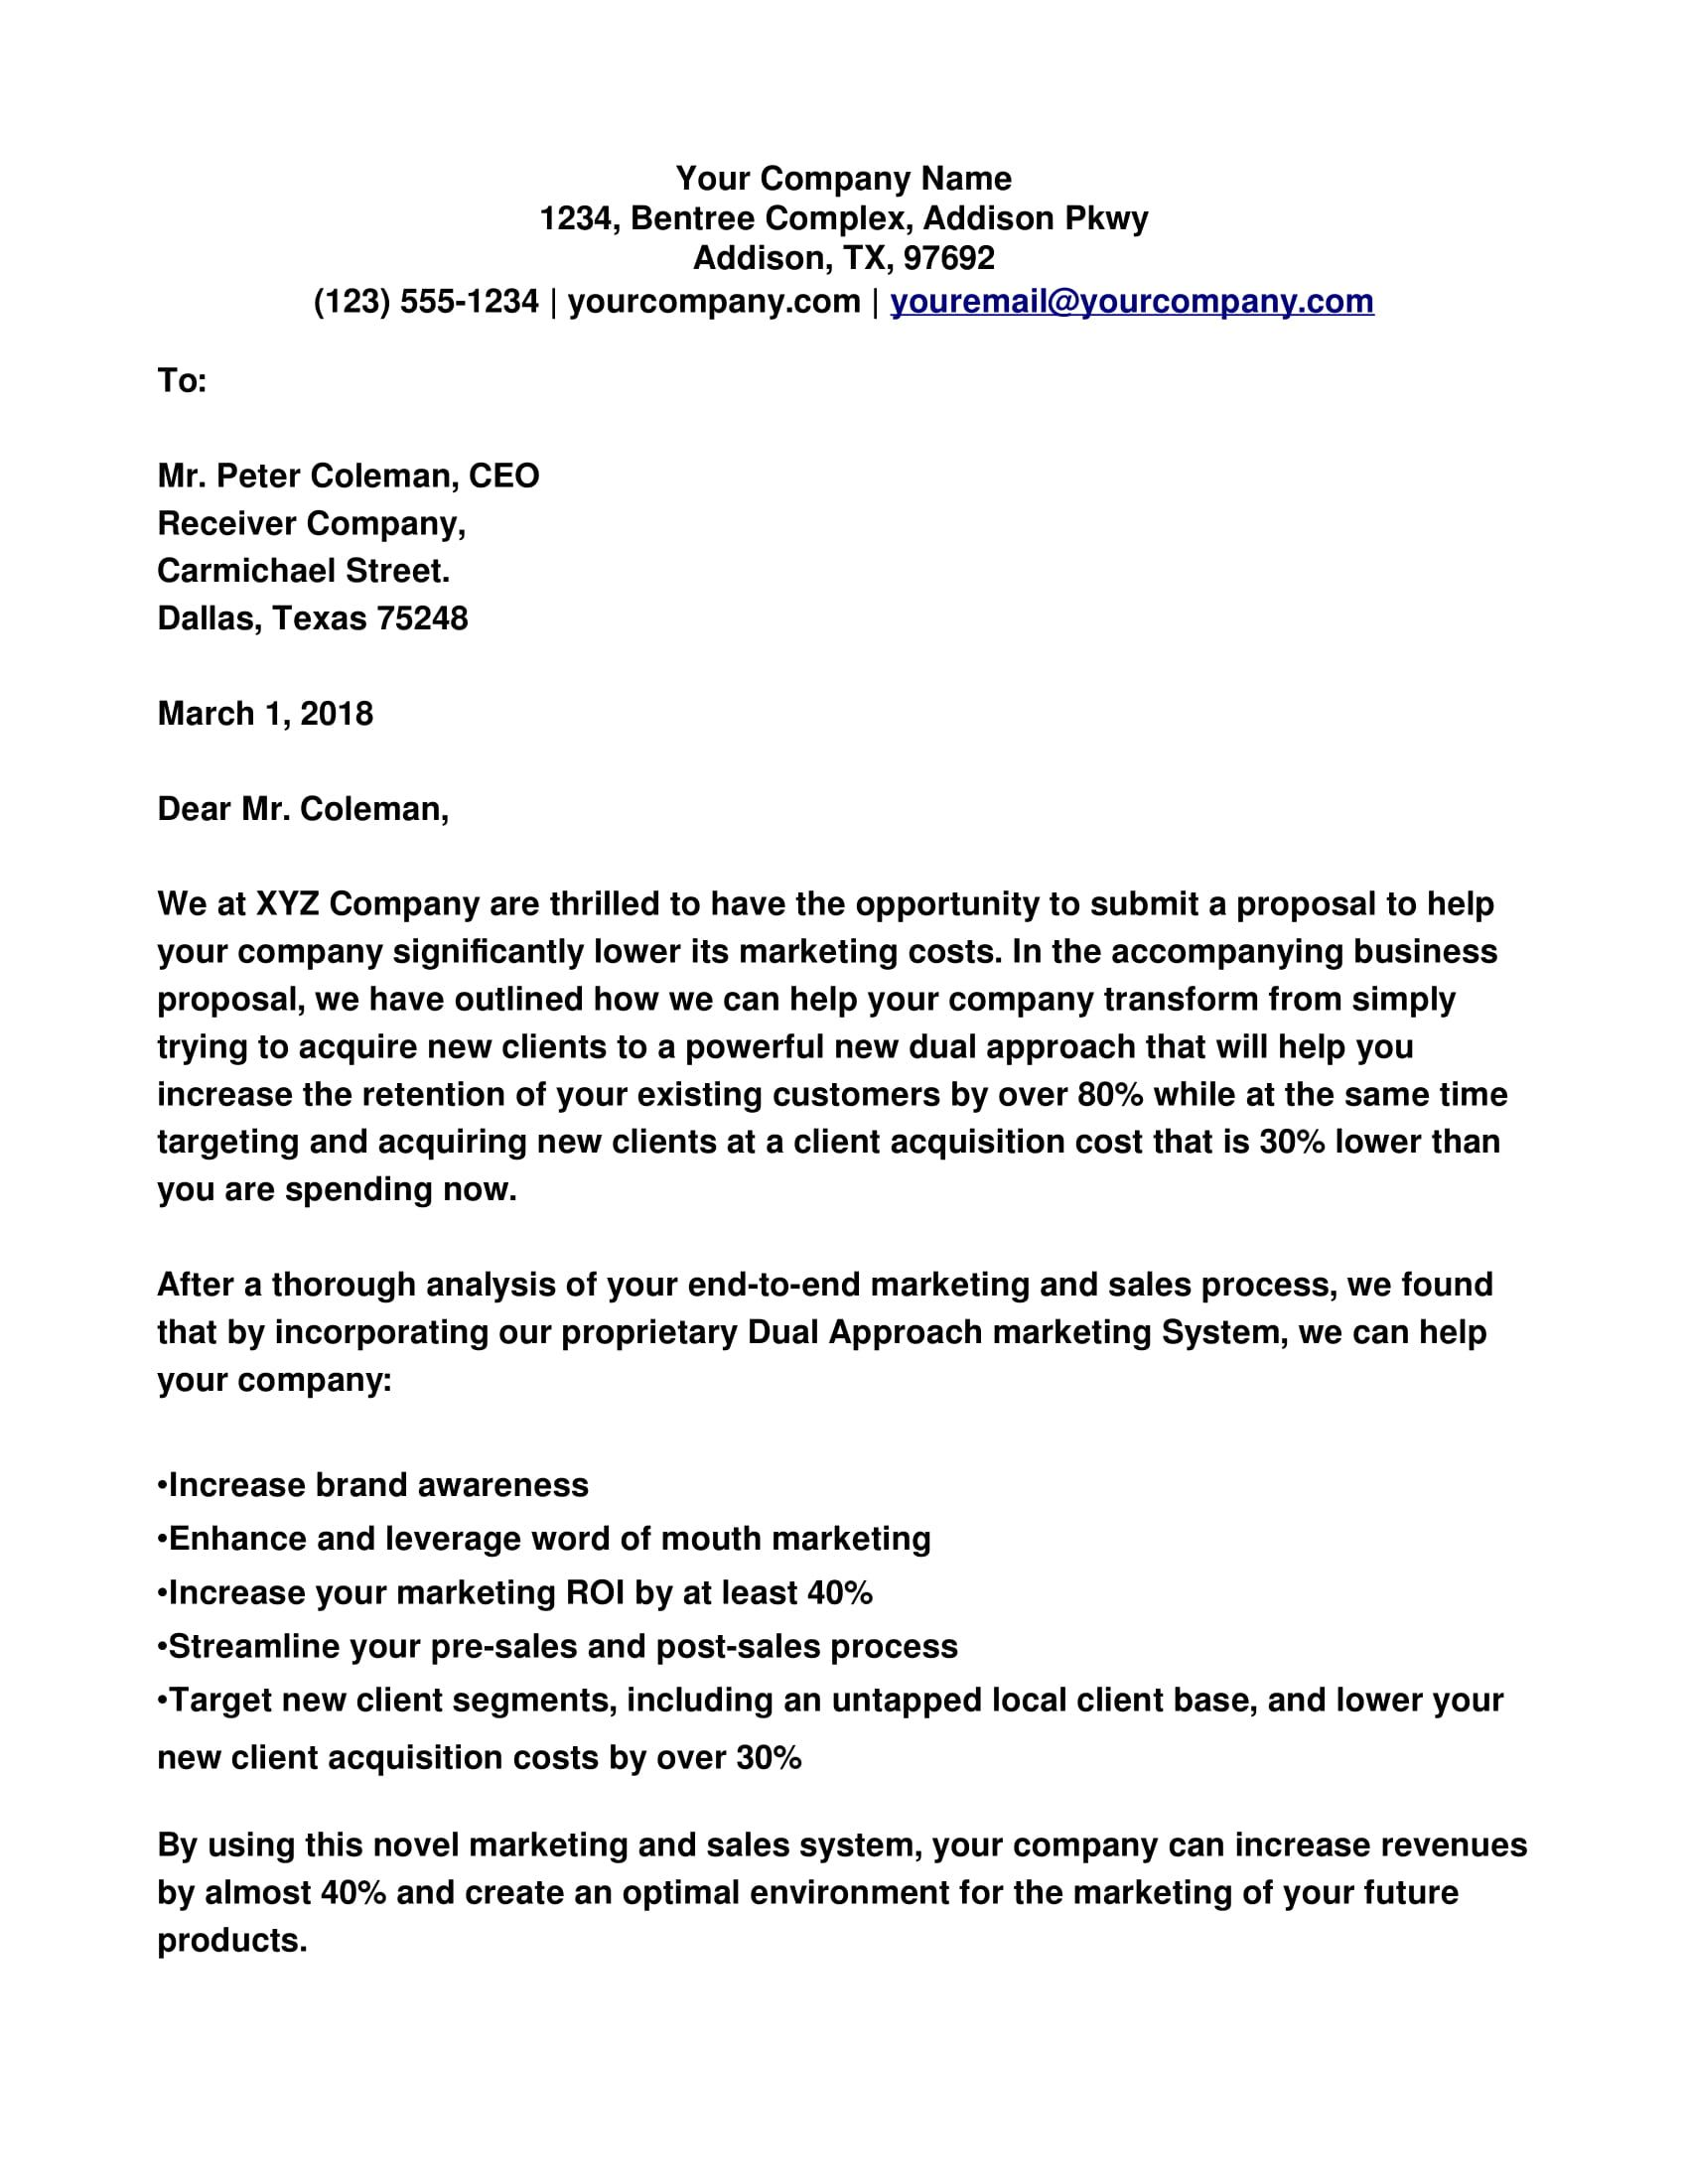 23 Business Cover Letter Proposal Examples Pdf